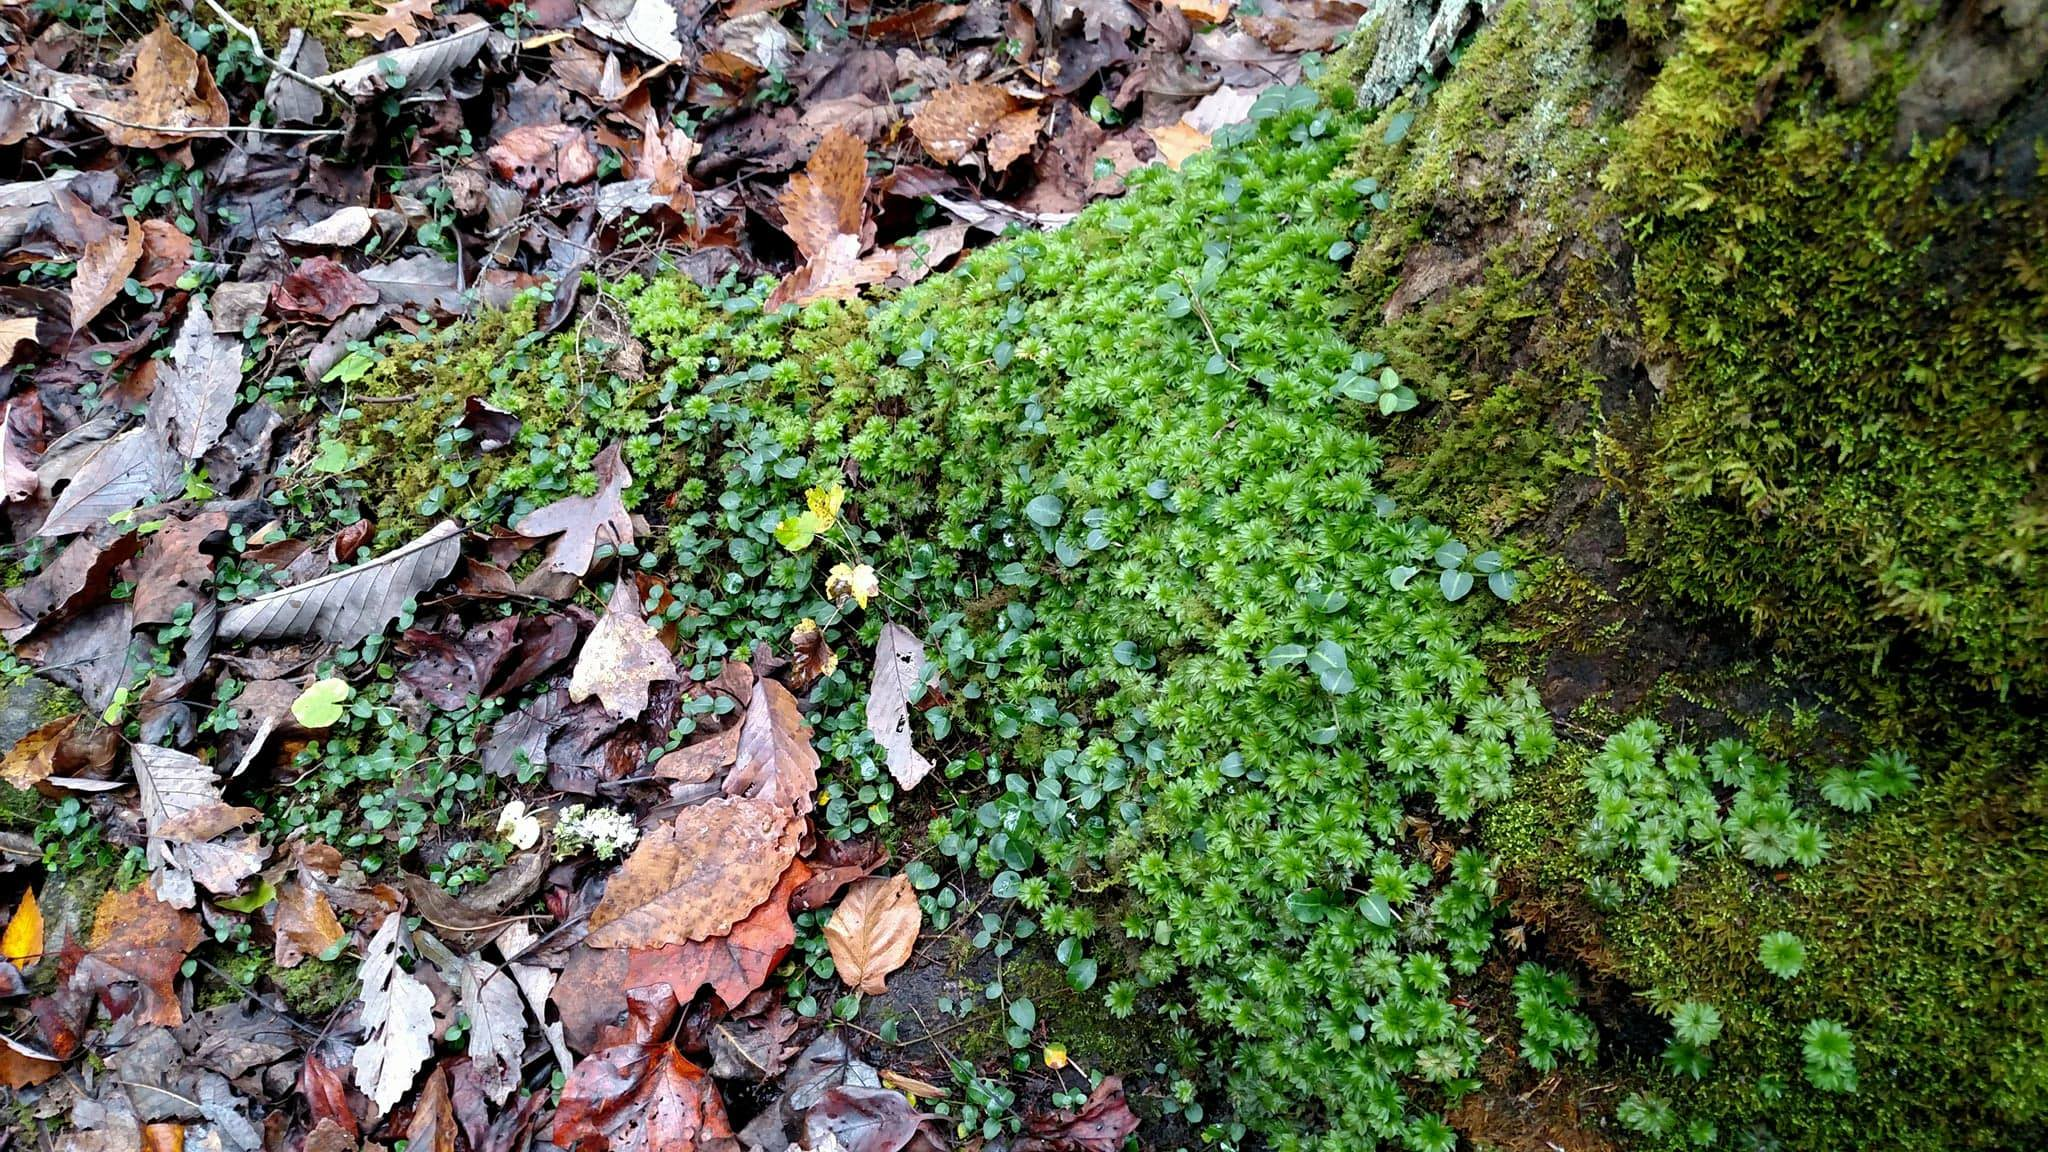 Cedum growing on tree trunk, Blanton Forest. Photo by Leah D. Schade. All rights reserved.